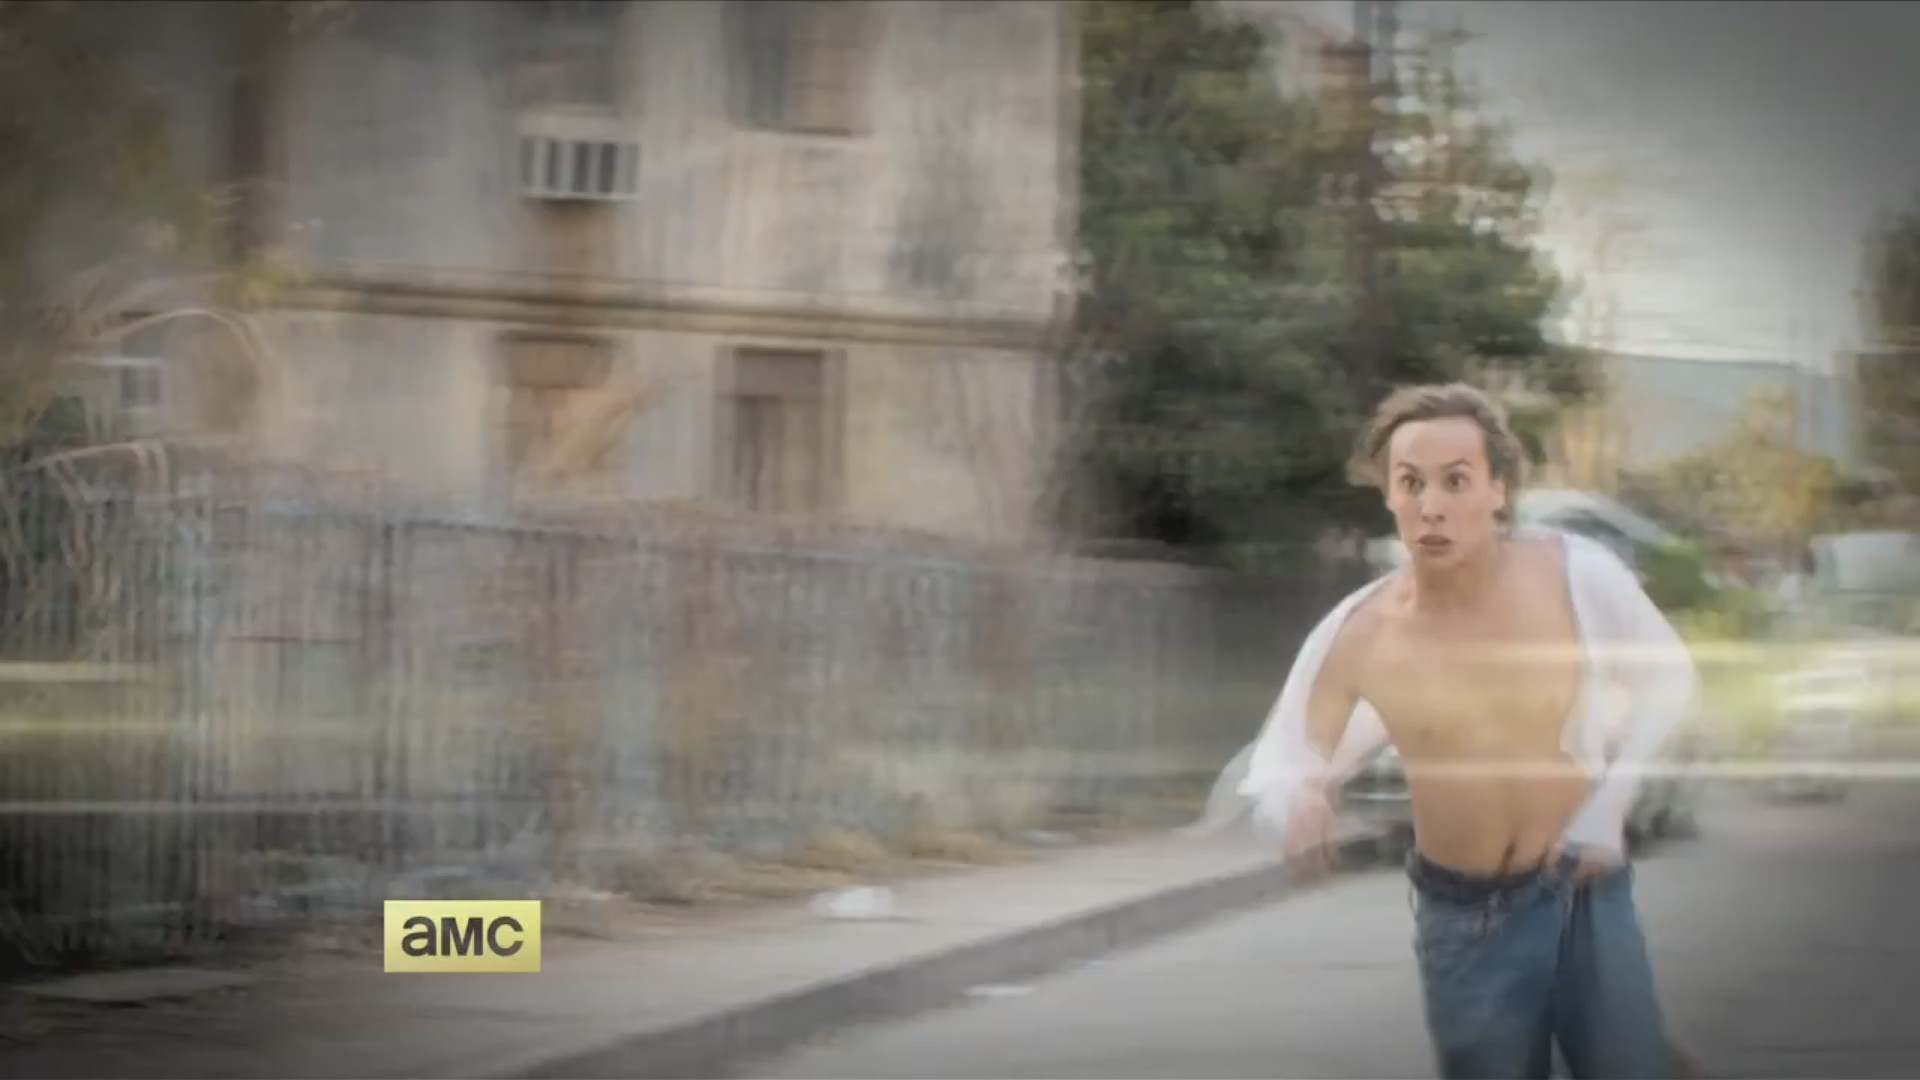 fear-the-walking-dead-amc-promo-035